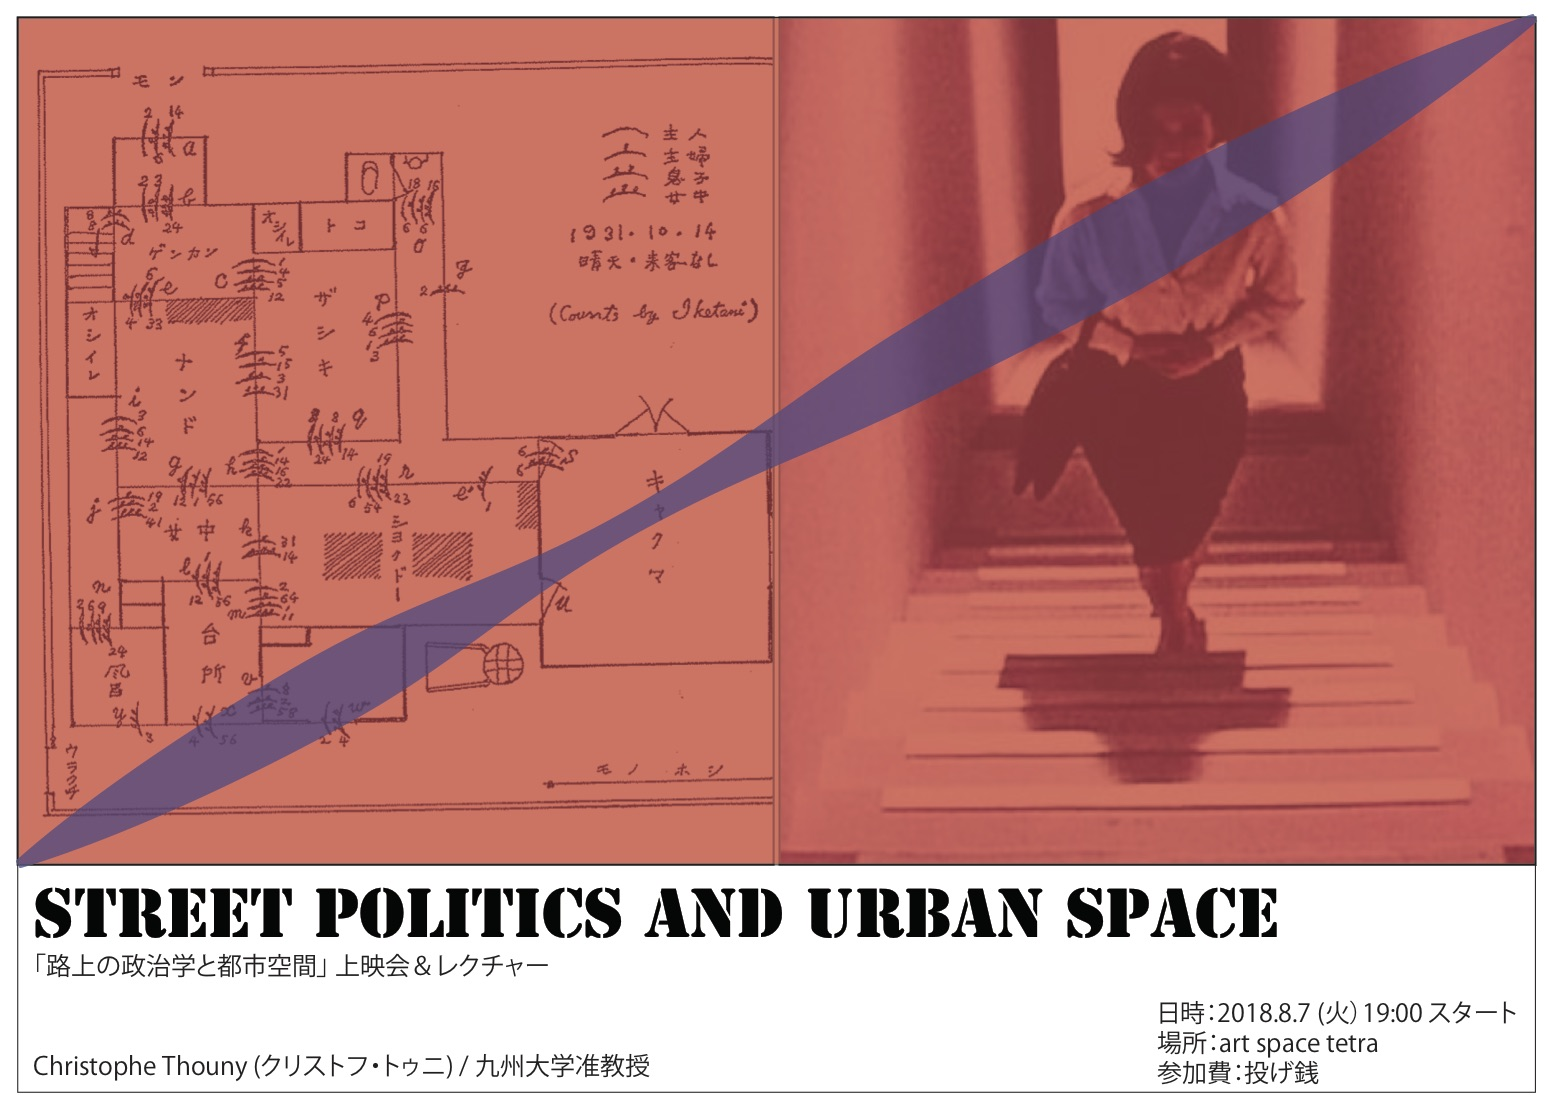 Street Politics and Urban Space